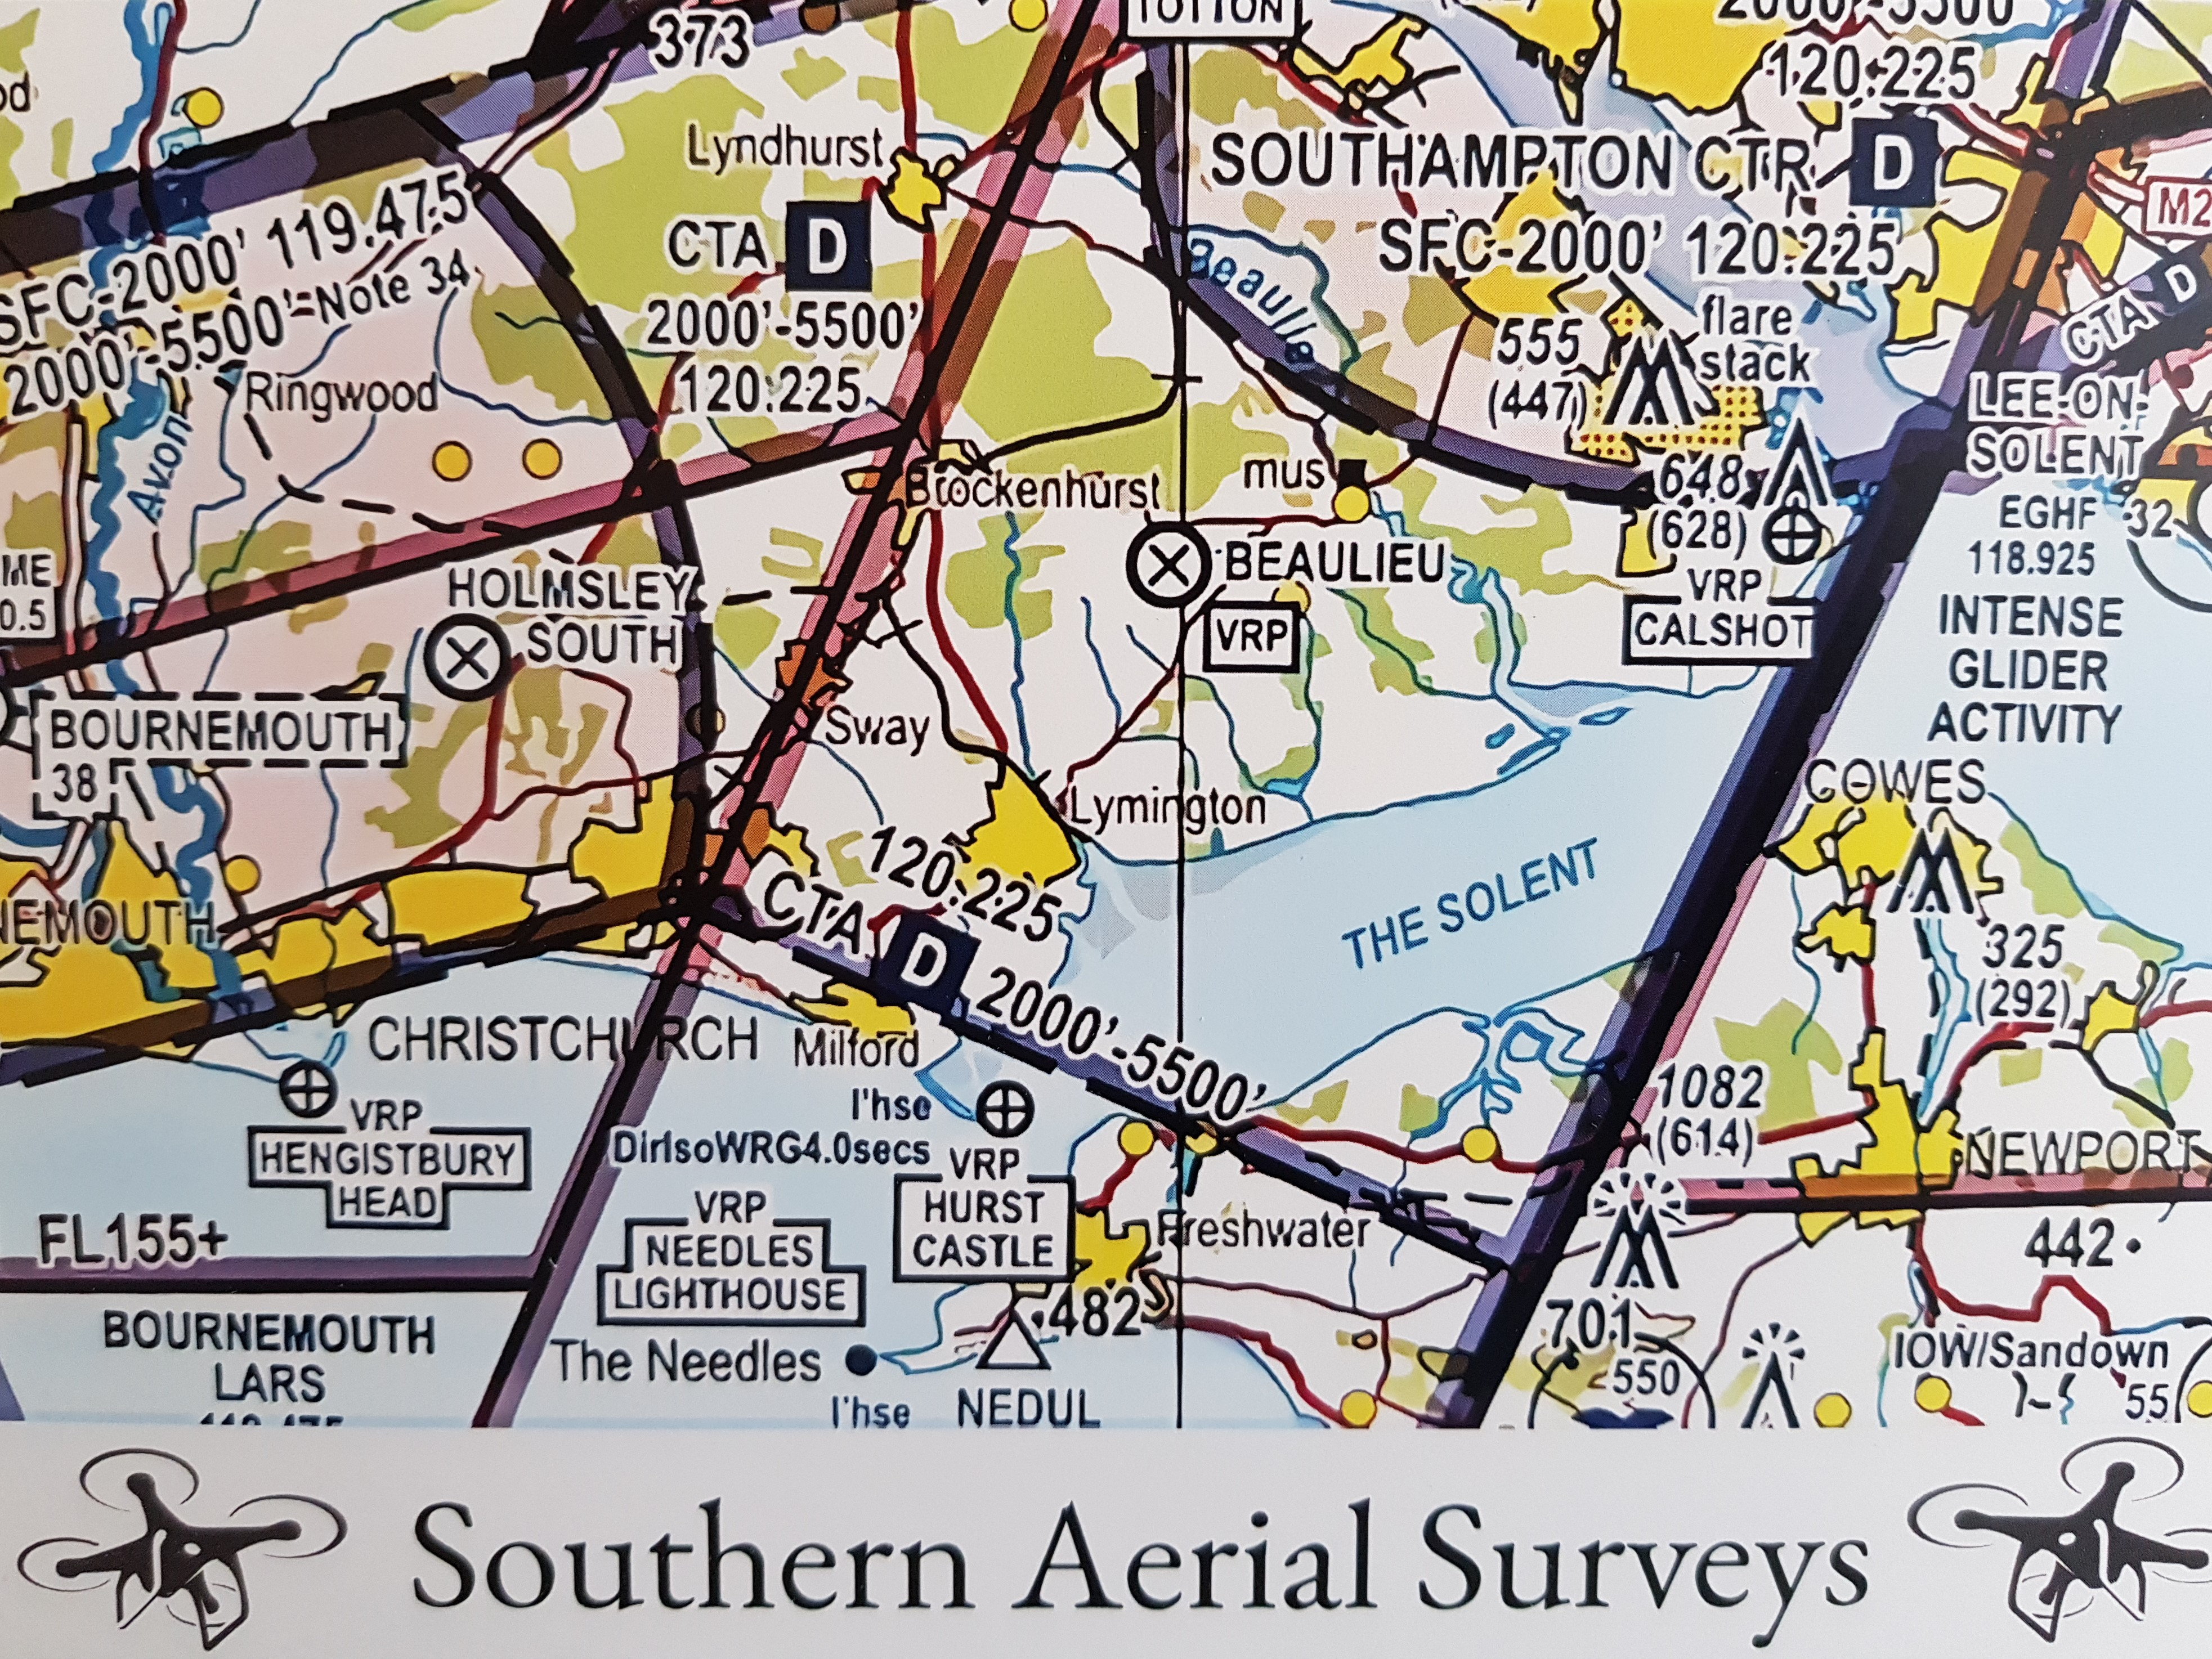 Southern Aerial Surveys